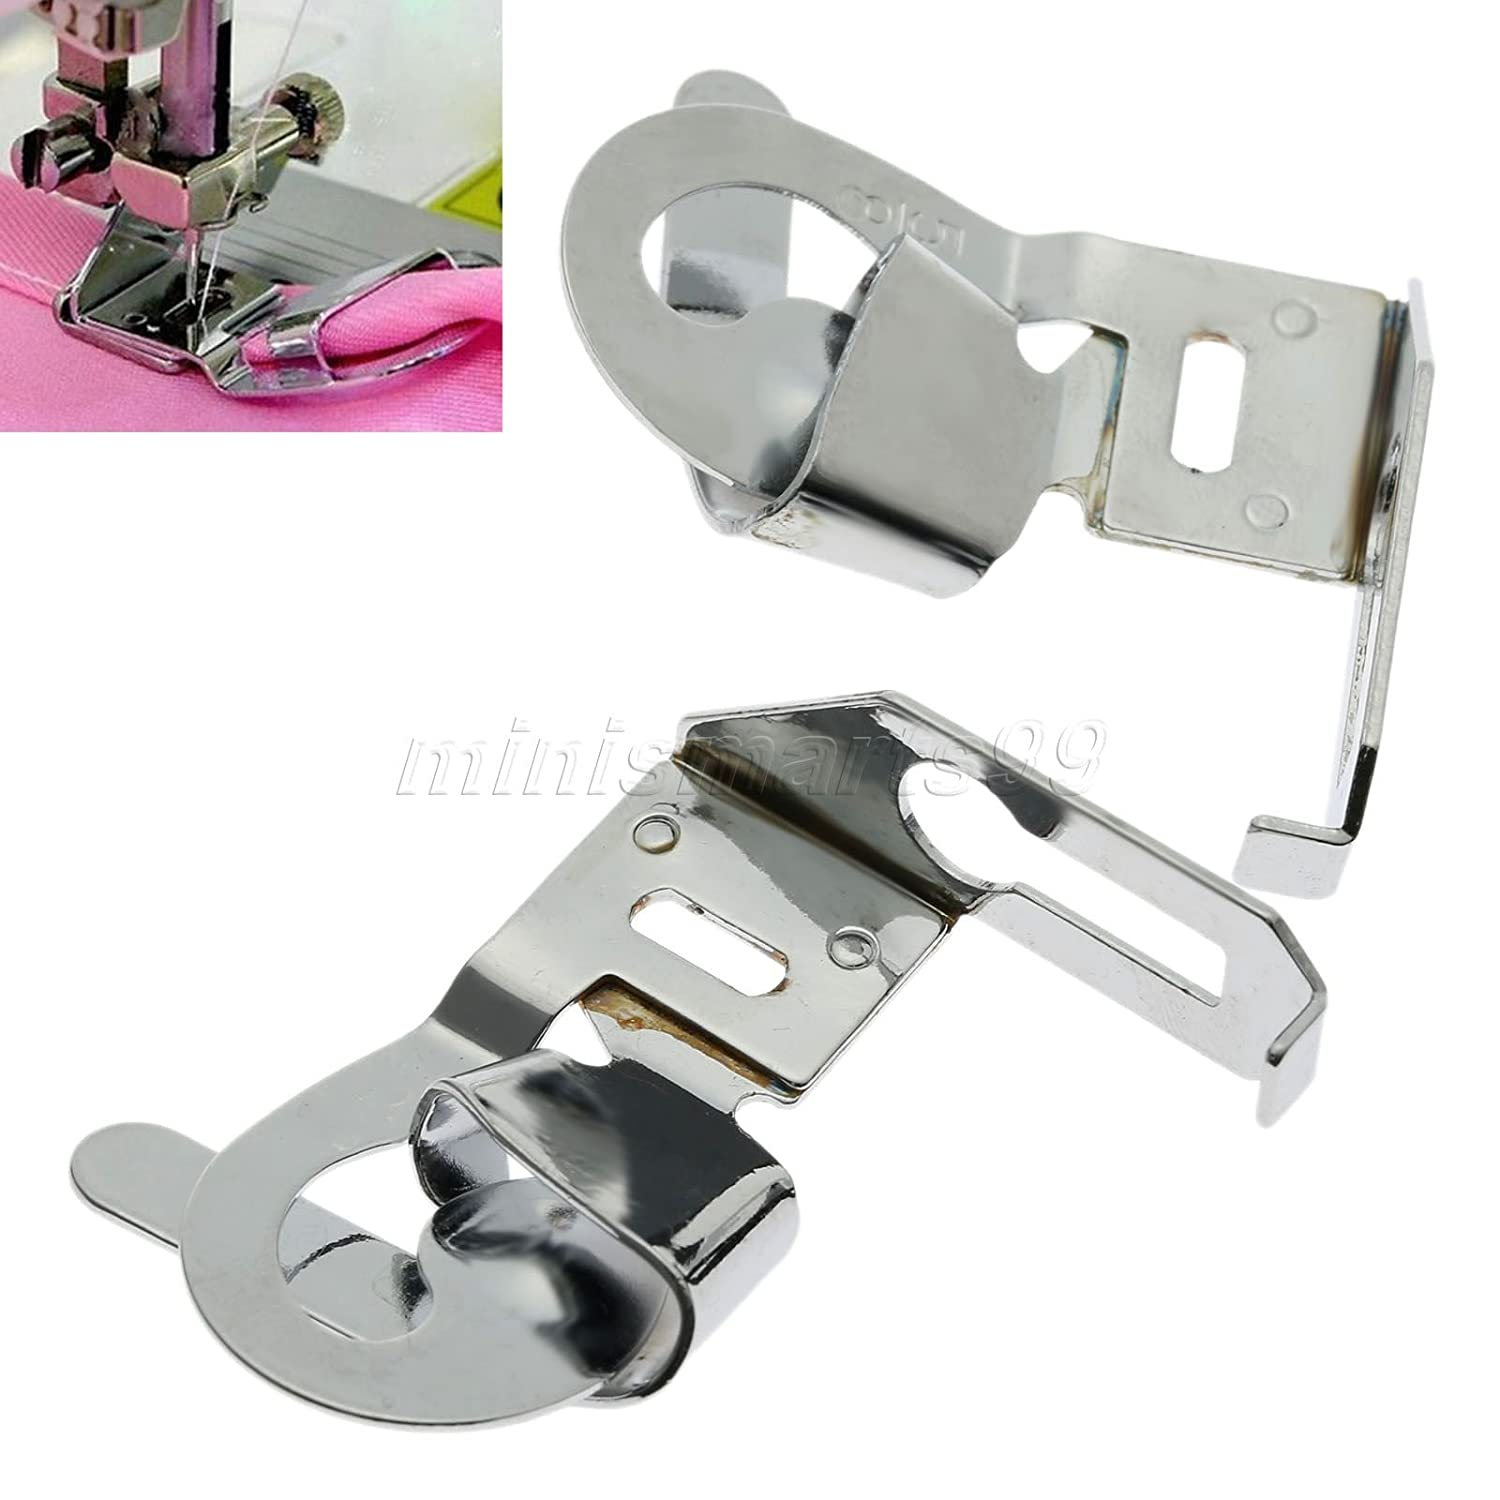 Cacys Store - 1PC Household Sewing Machine Parts Presser Foot Hemmer Foot(original Quality) Jeans Leg Curl 16mm 5/8